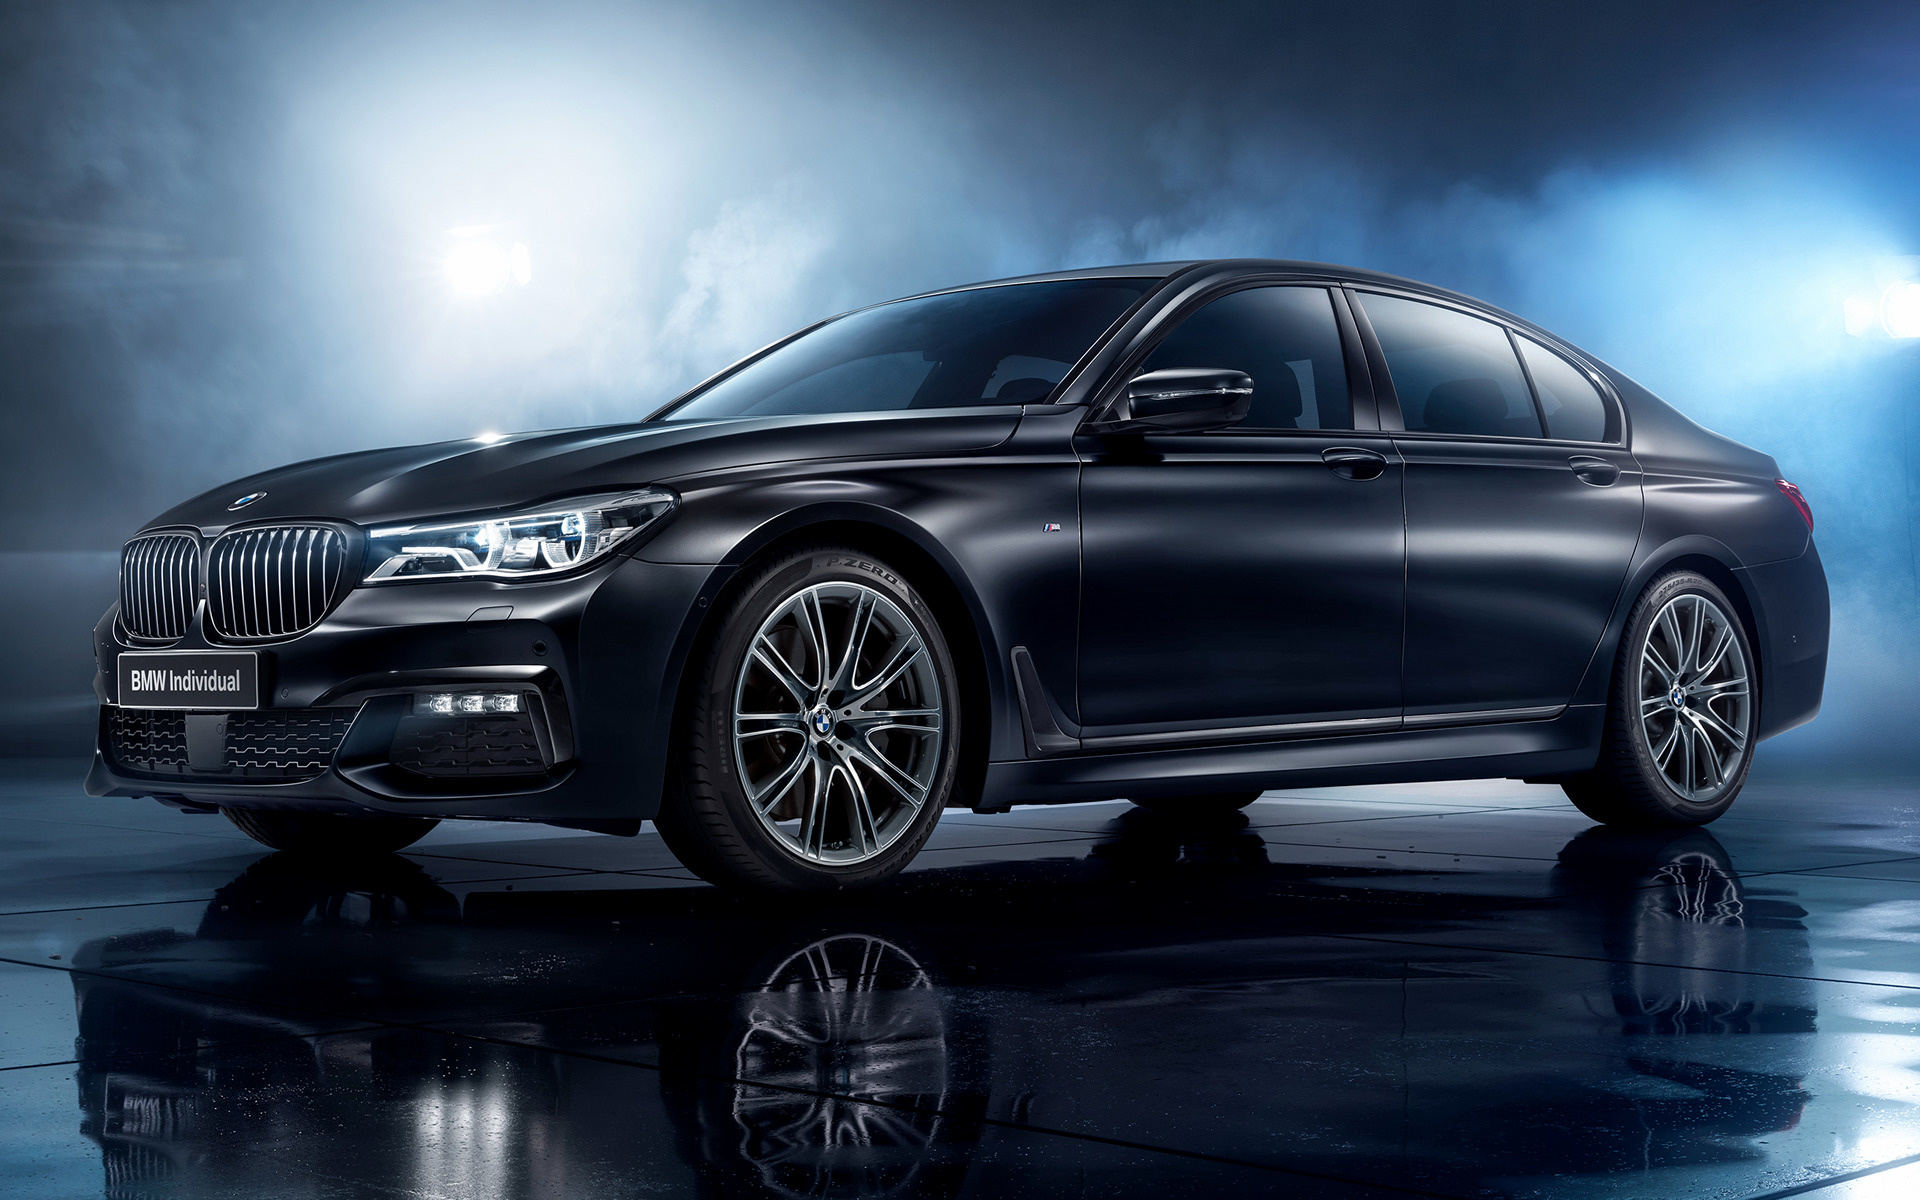 2017 Bmw 7 Series Black Ice Edition Ru Wallpapers And